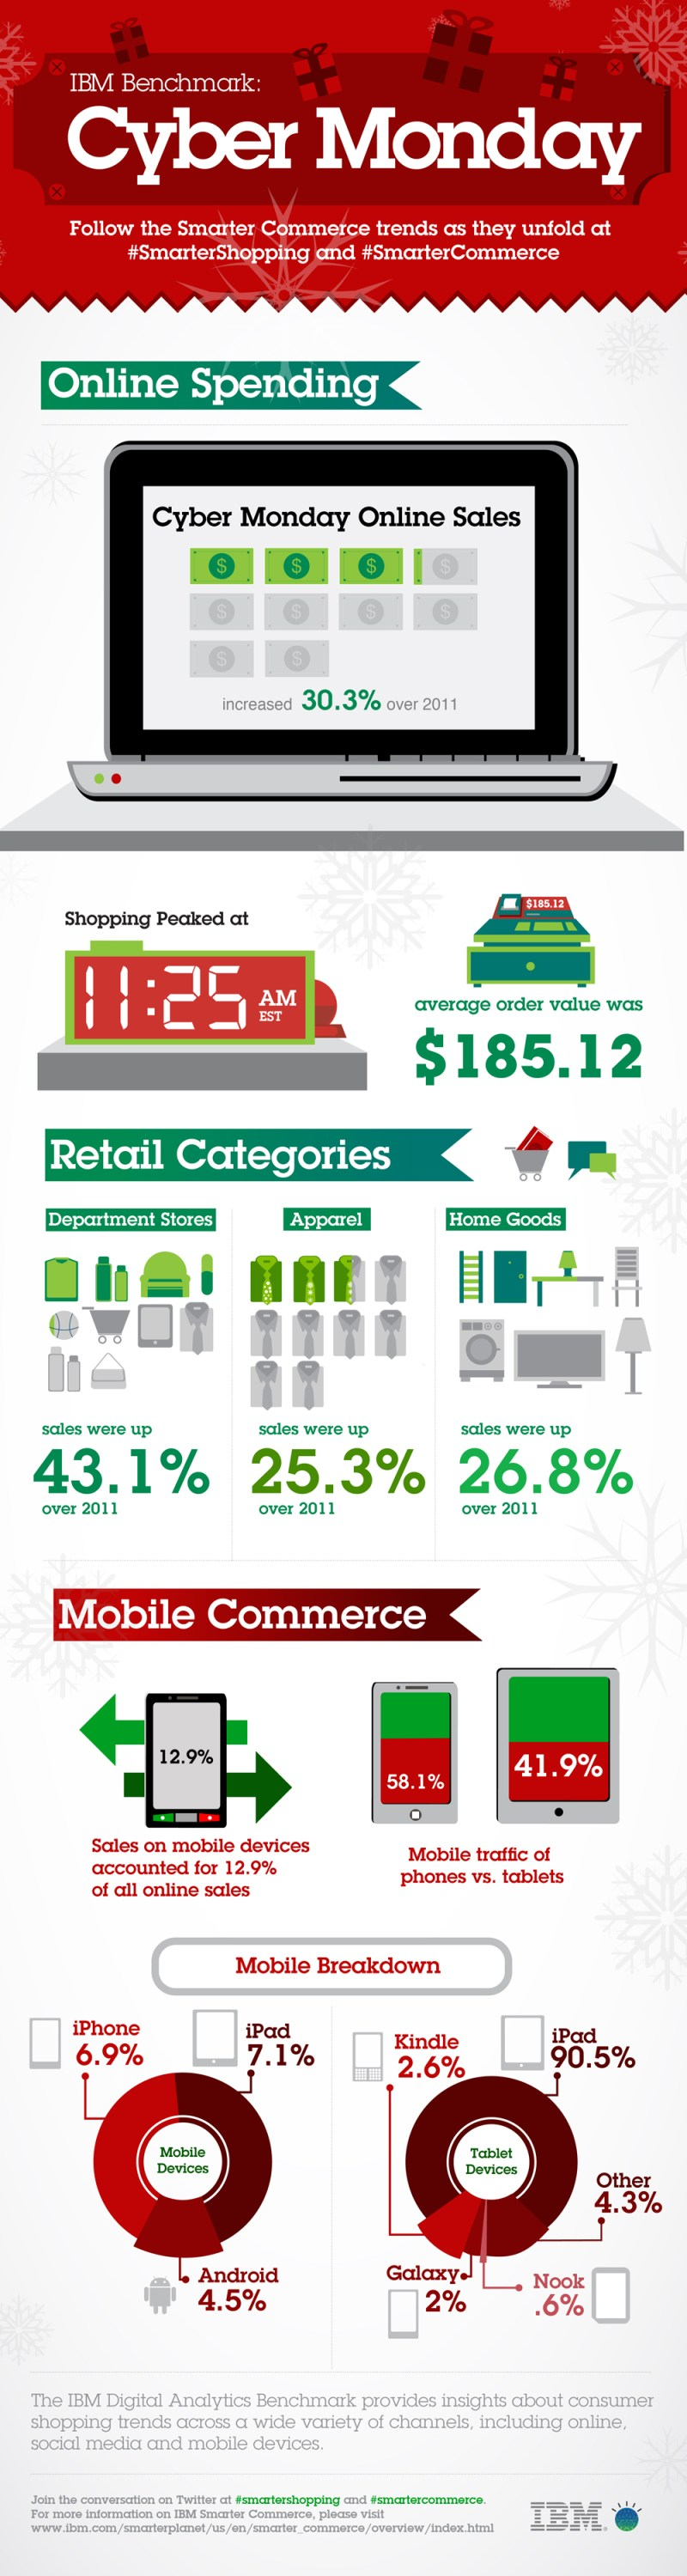 Infographic - Cyber Monday, 2012